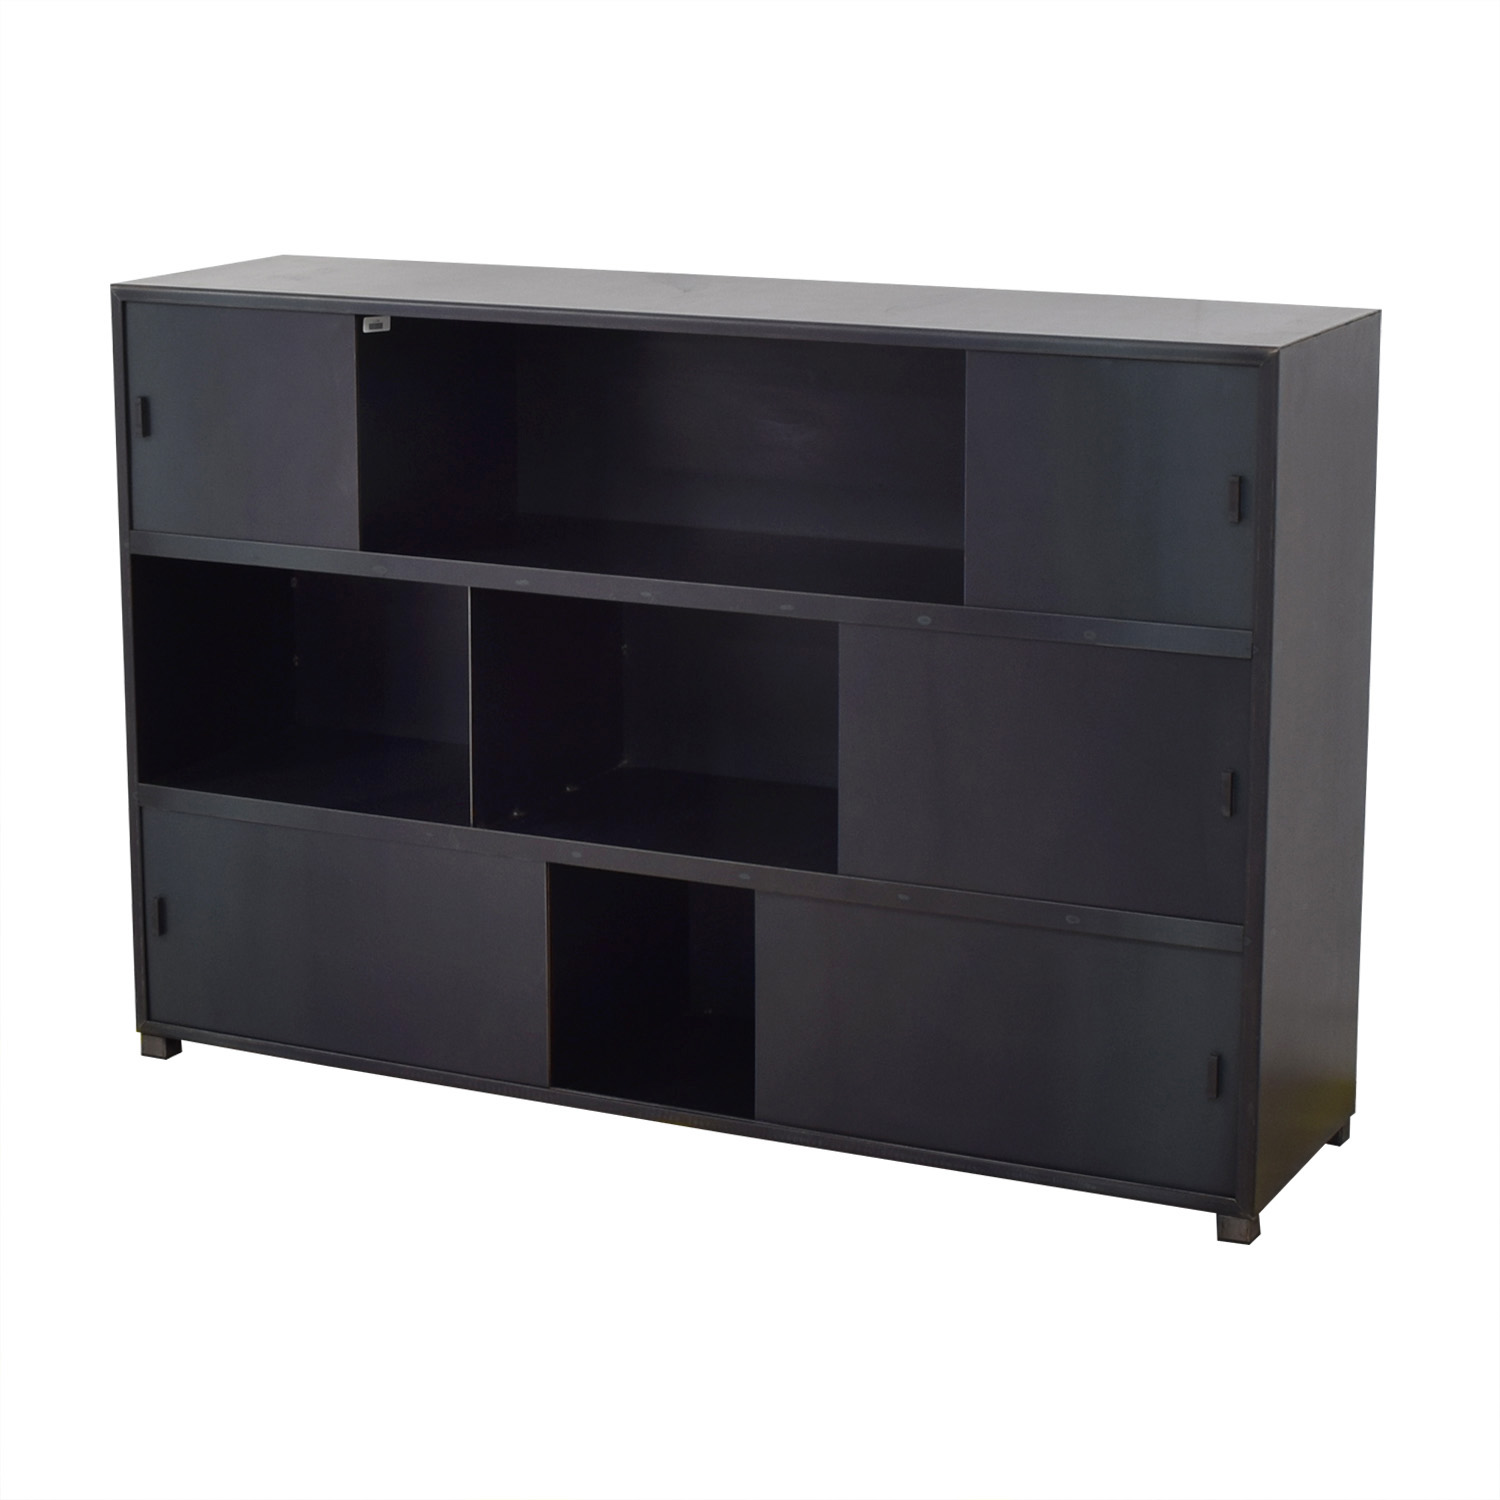 ABC Carpet & Home ABC Carpet & Home Bookcase with Sliding Doors Grey